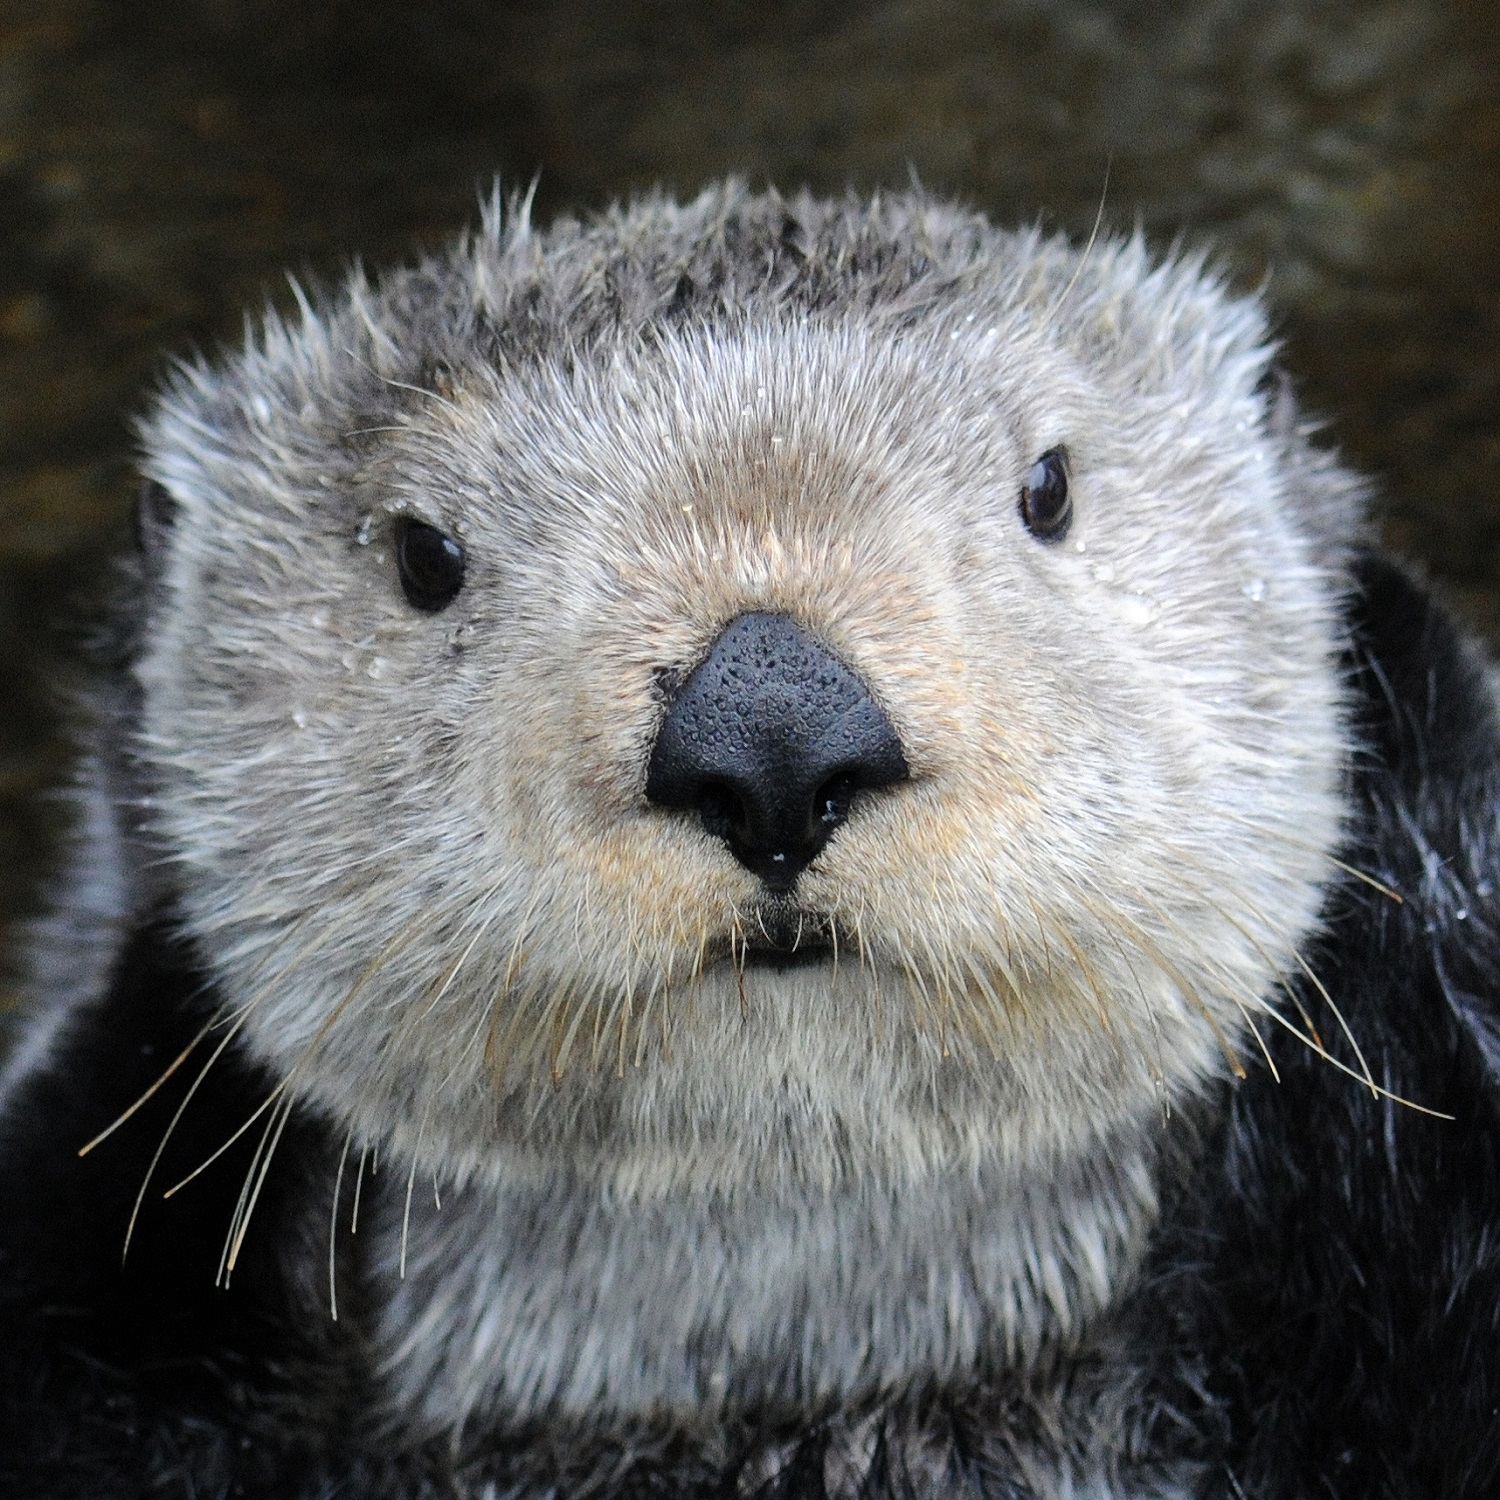 Adaa the sea otter